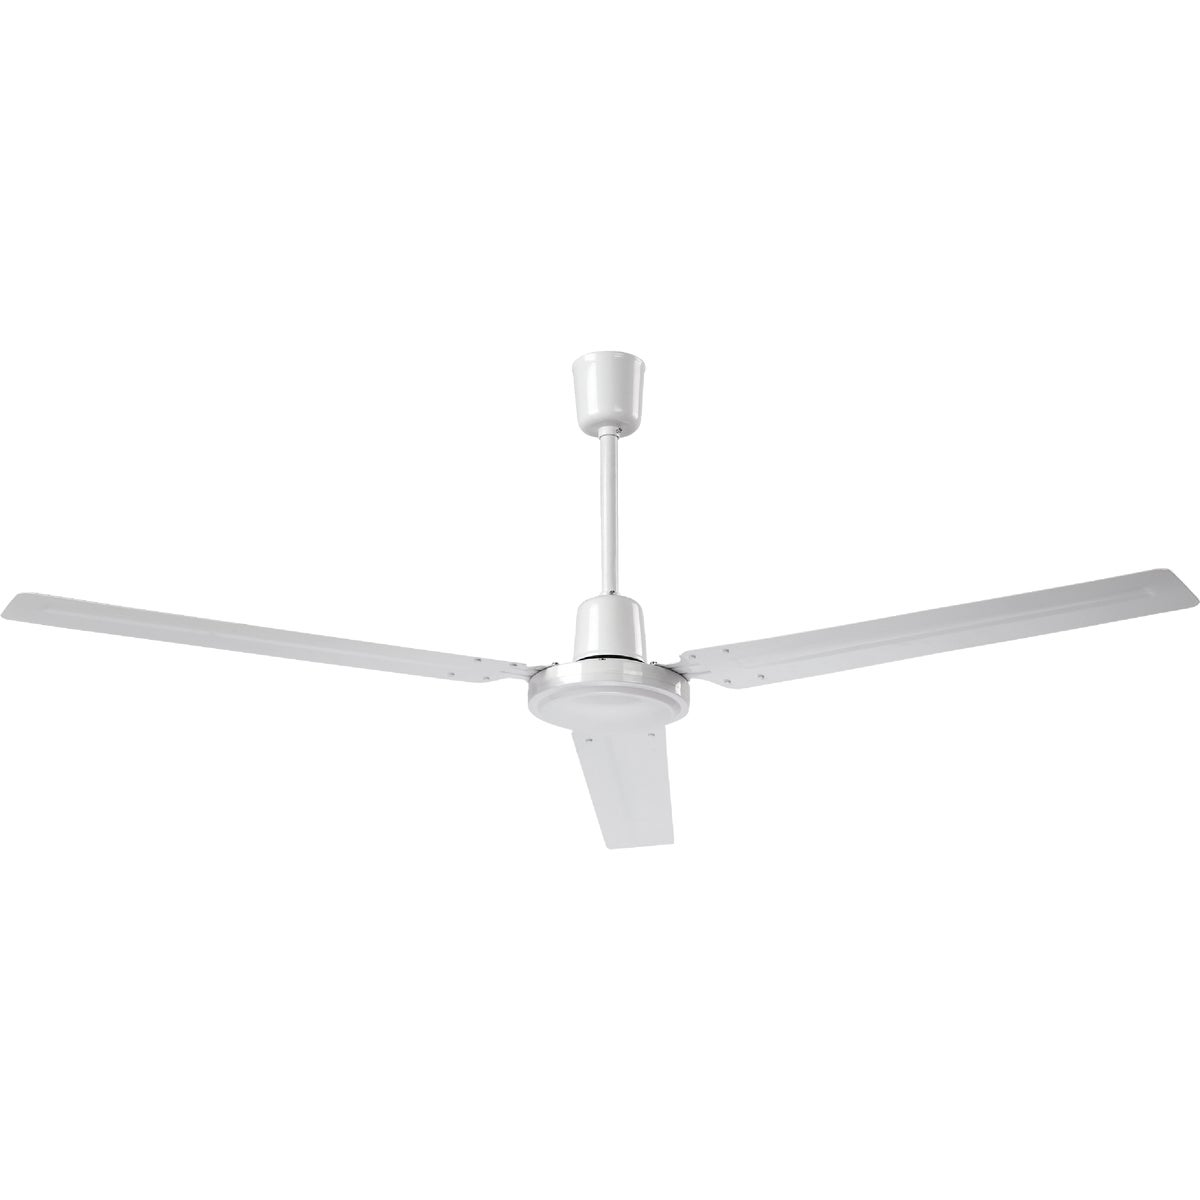 "56"" WHITE CEILING FAN - CF56IND3WH by Canarm Gs"